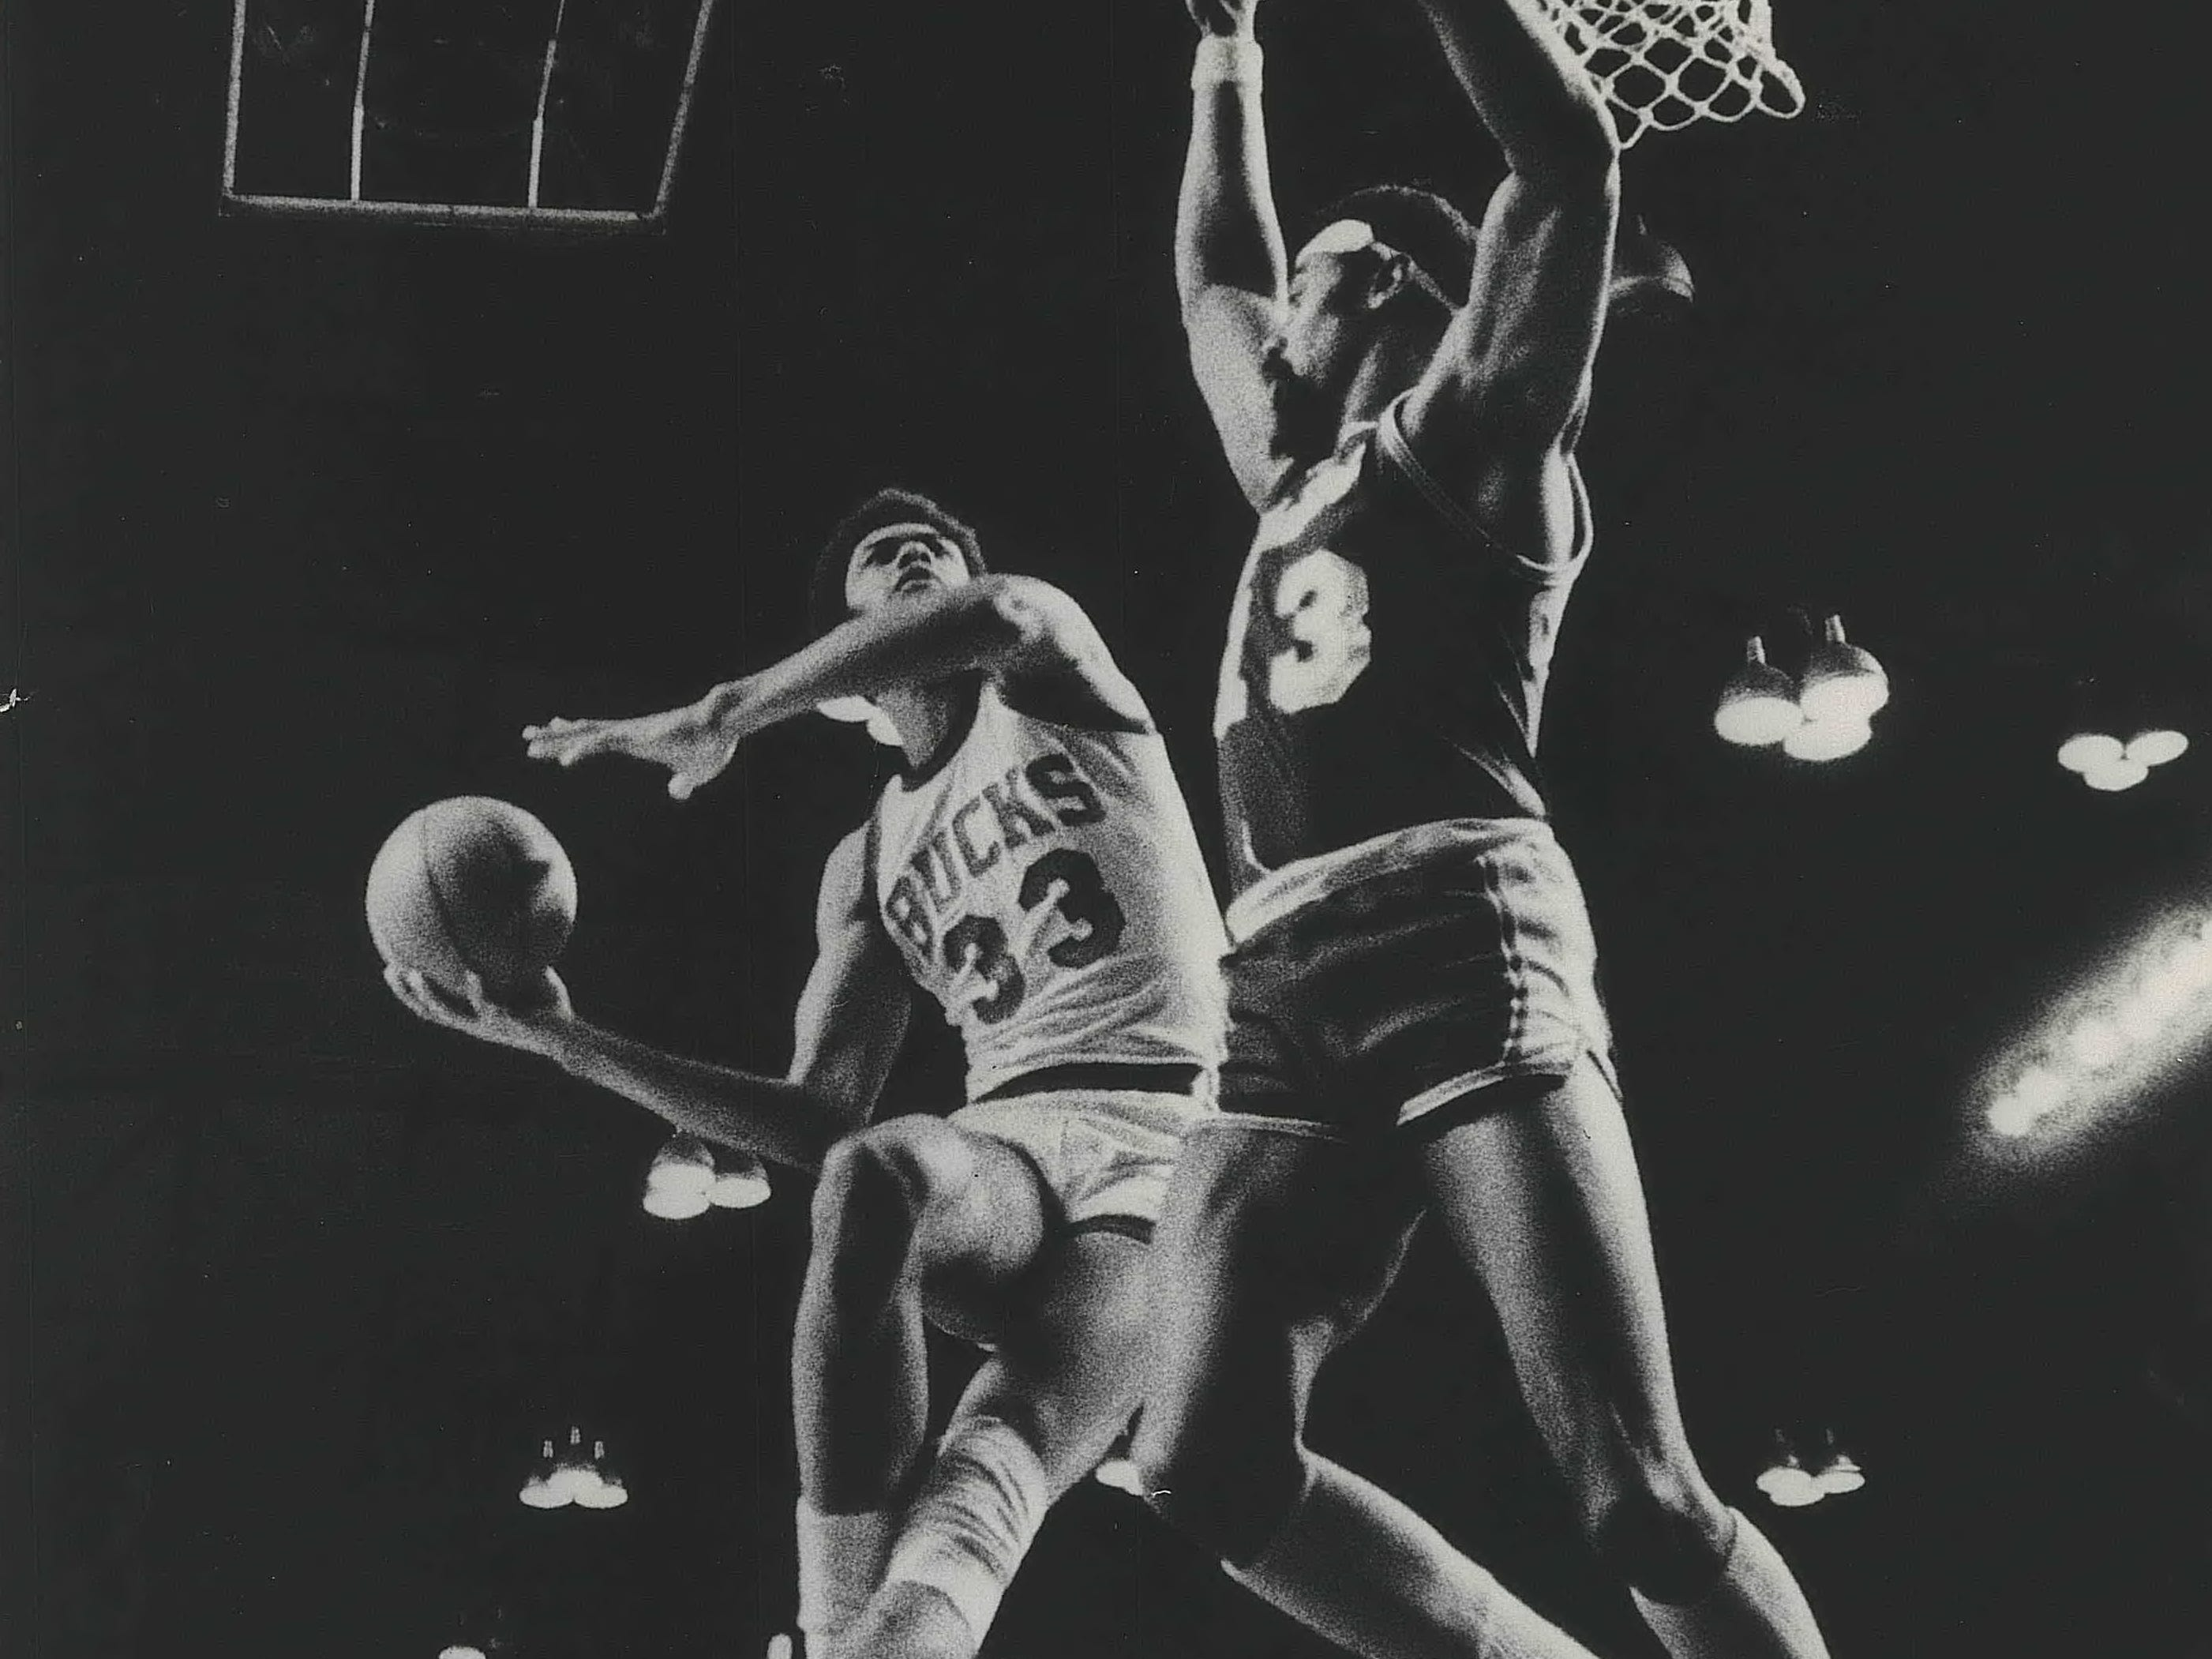 1972: Bucks star Kareem Abdul-Jabbar maneuvers for a shot over Lakers legend Wilt Chamberlain during Game 6 of the Western Conference finals on April 22, 1972.  Los Angeles defeated Milwaukee, 104-100, eliminating the Bucks from the playoffs. This photo was published in the April 24, 1972, Milwaukee Journal.